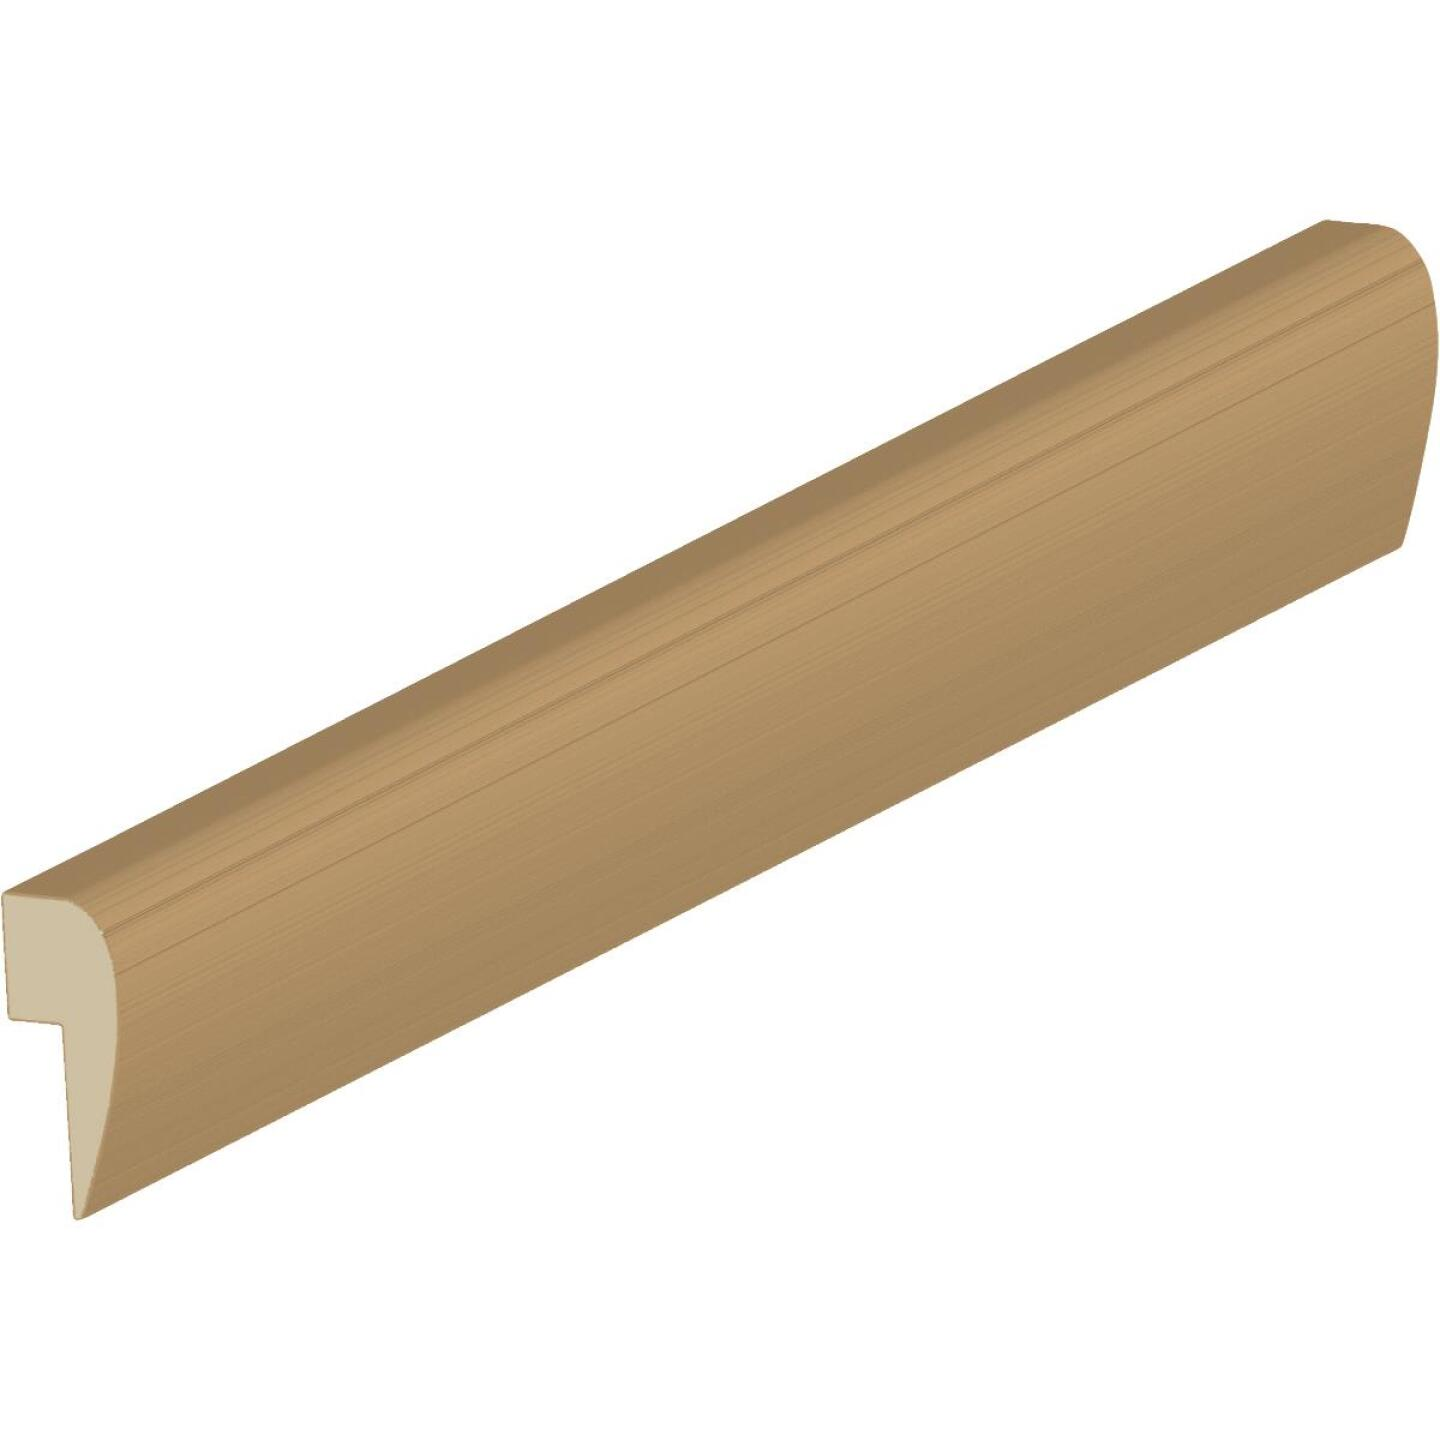 Cedar Creek WM295 1/2 In. W. x 1-1/4 In. H. x 8 Ft. L. Solid Pine Ply Cap Molding Image 1